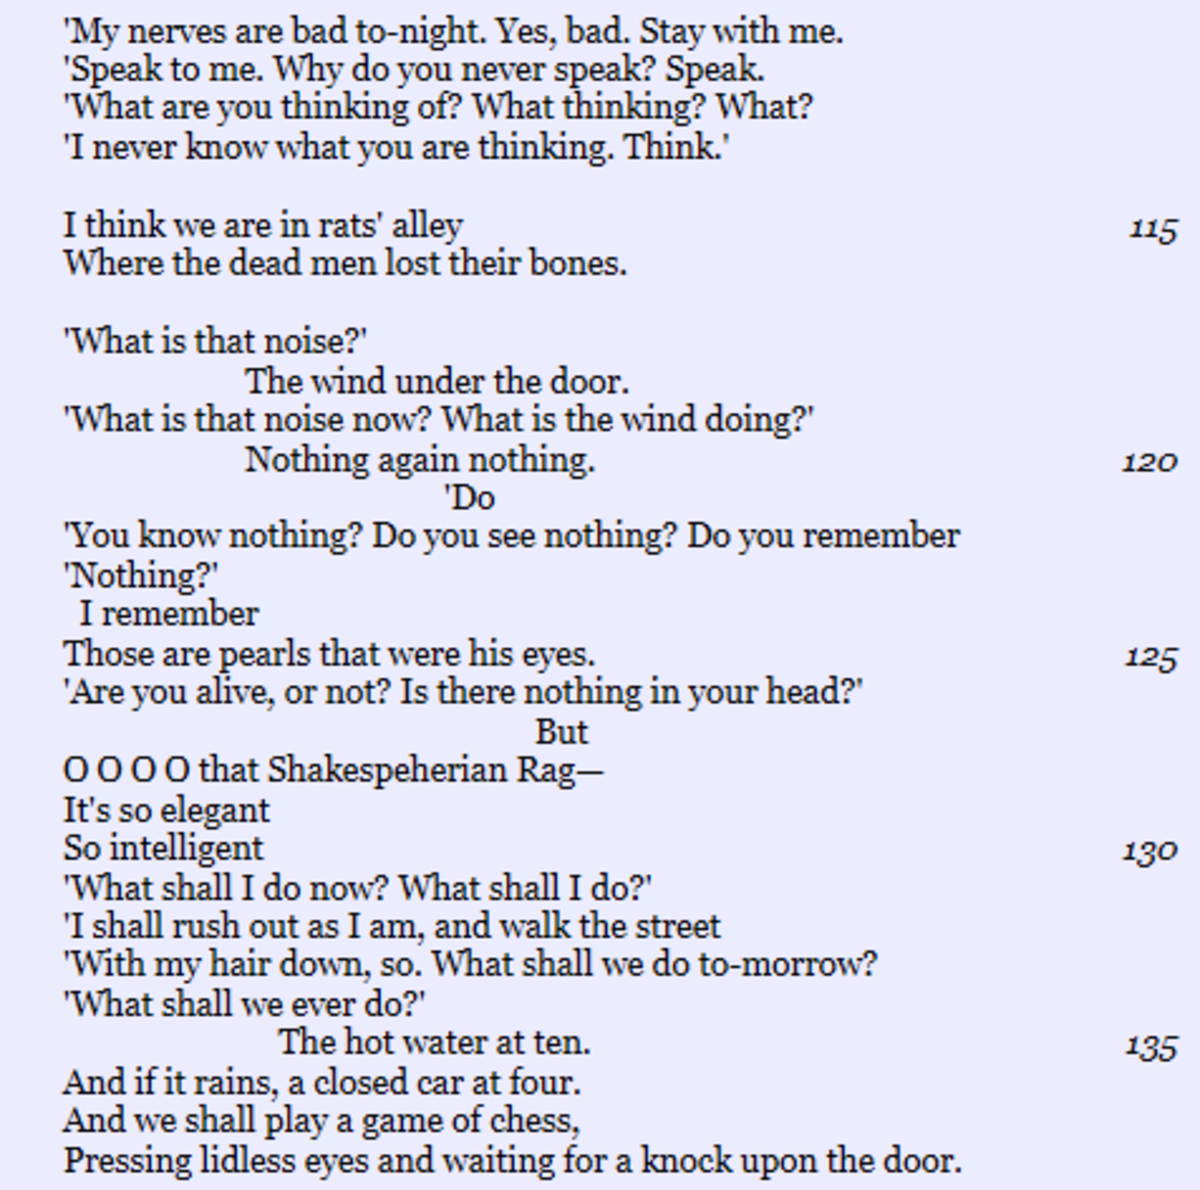 analysis-of-poem-the-waste-land-by-tseliot